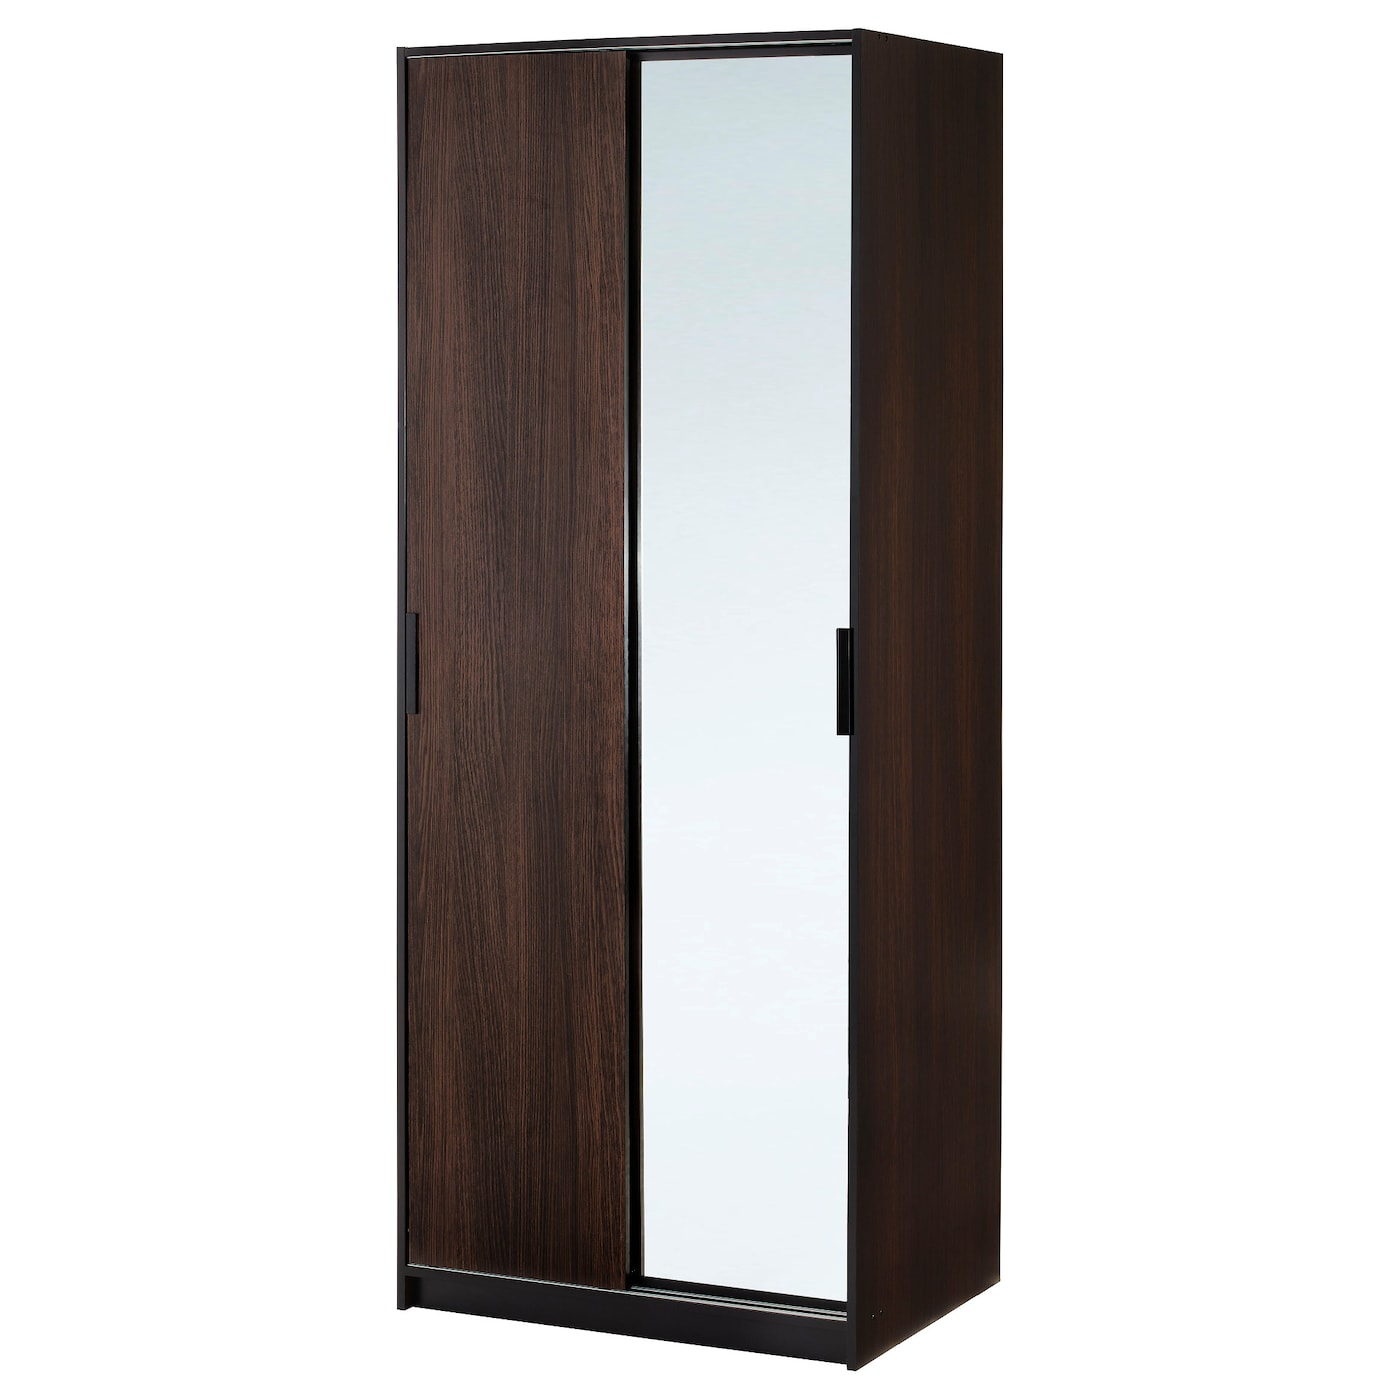 Trysil wardrobe w sliding doors 4 drawers white 118x61x202 for Armoire couloir design